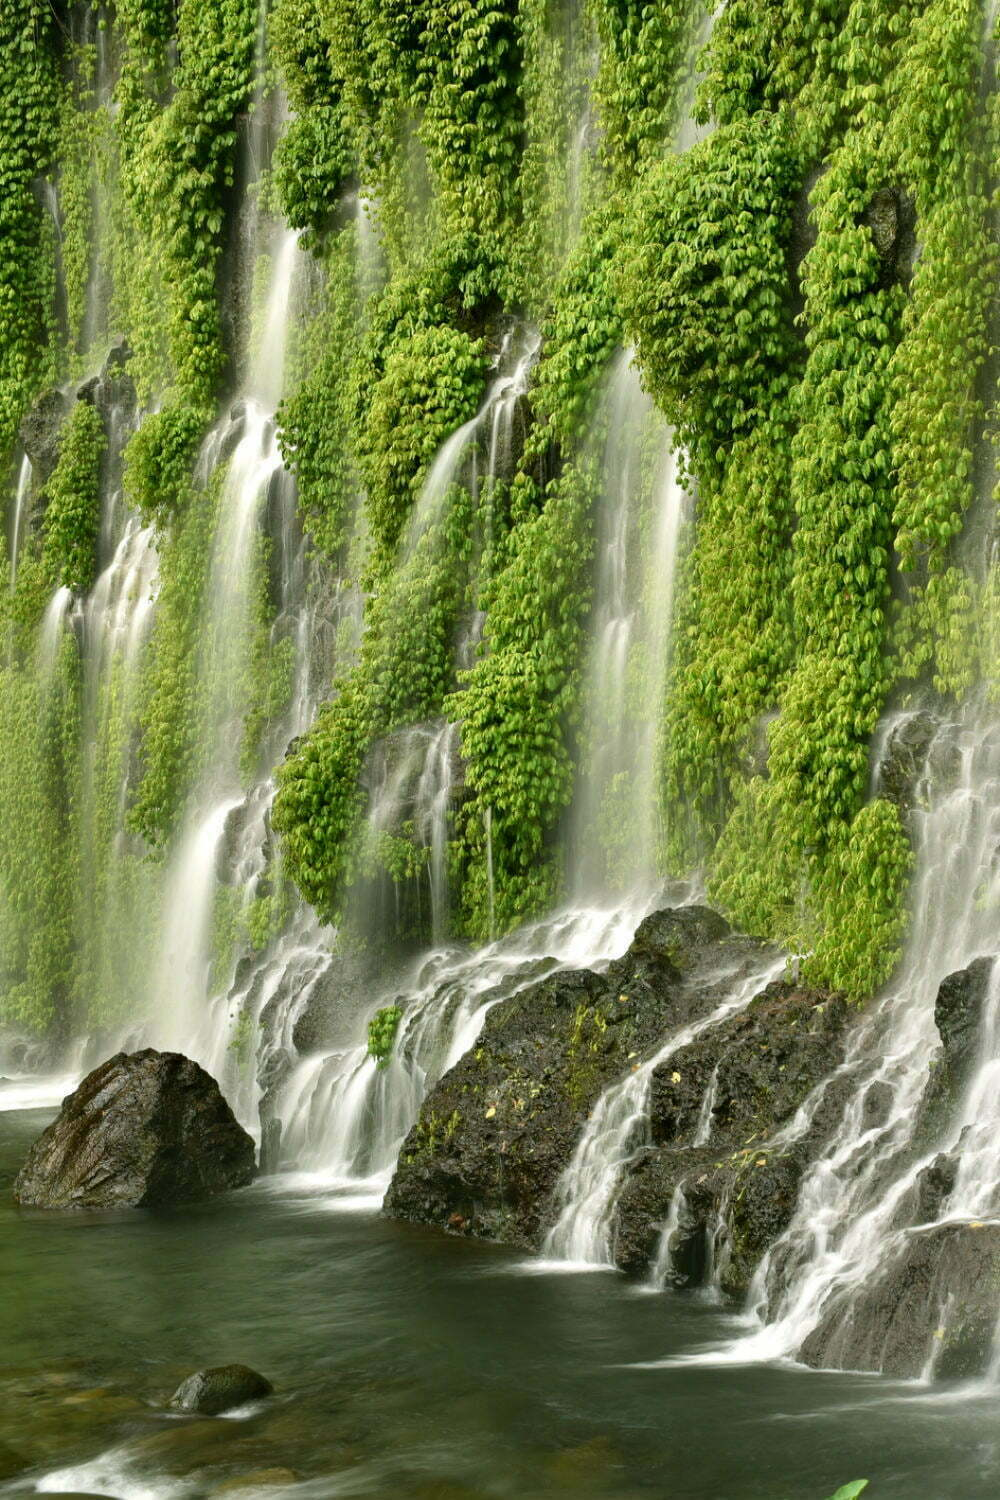 Asik-Asik Falls Philippines Waterfall - Most Beautiful Places in the Philippines Photos